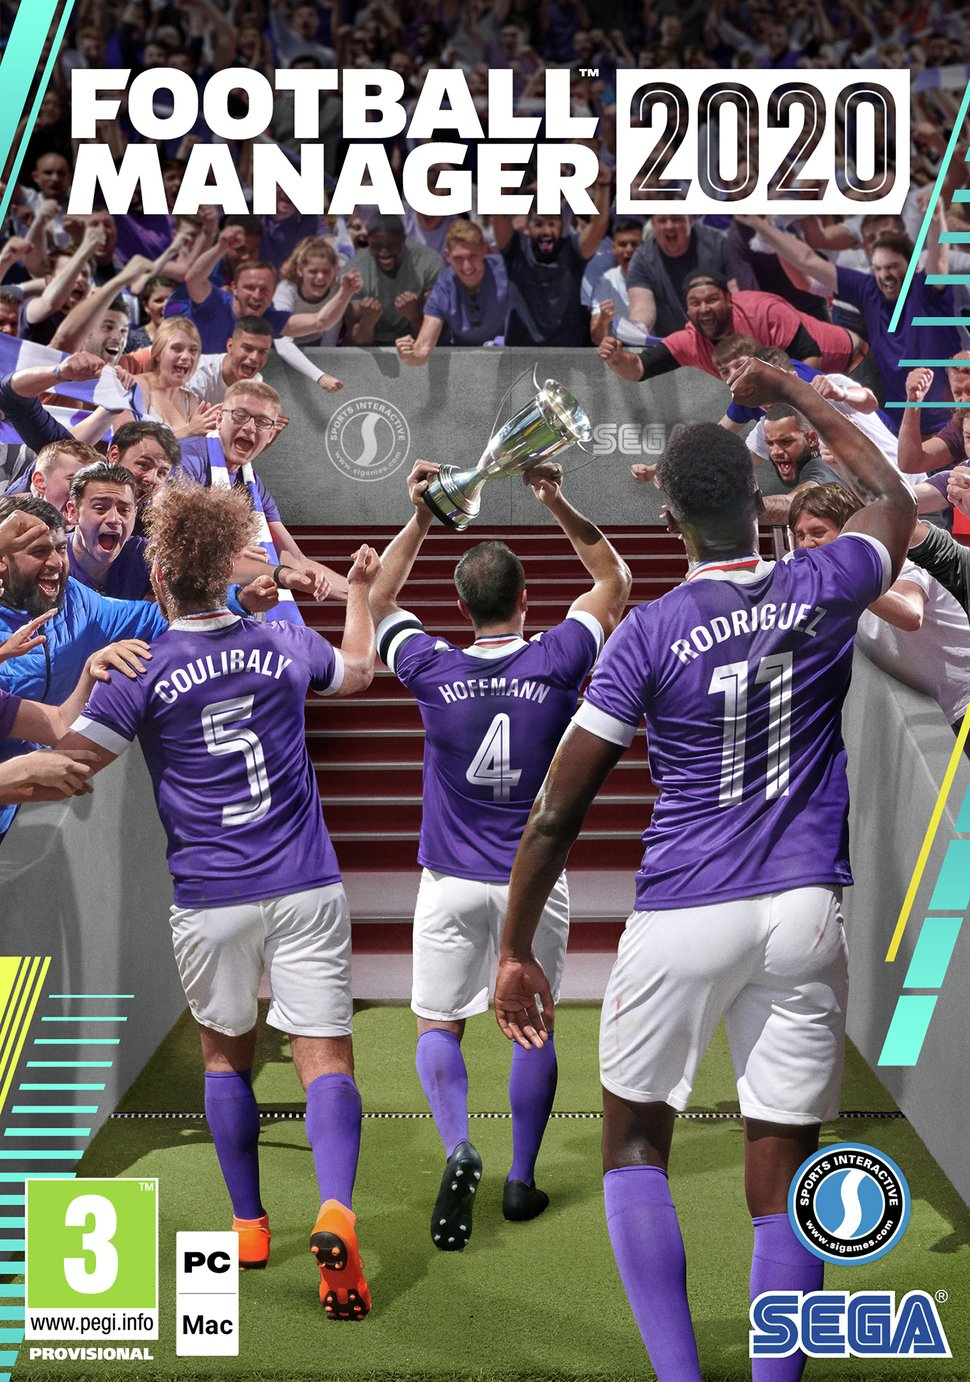 Football Manager 2020 PC Pre-Order Game